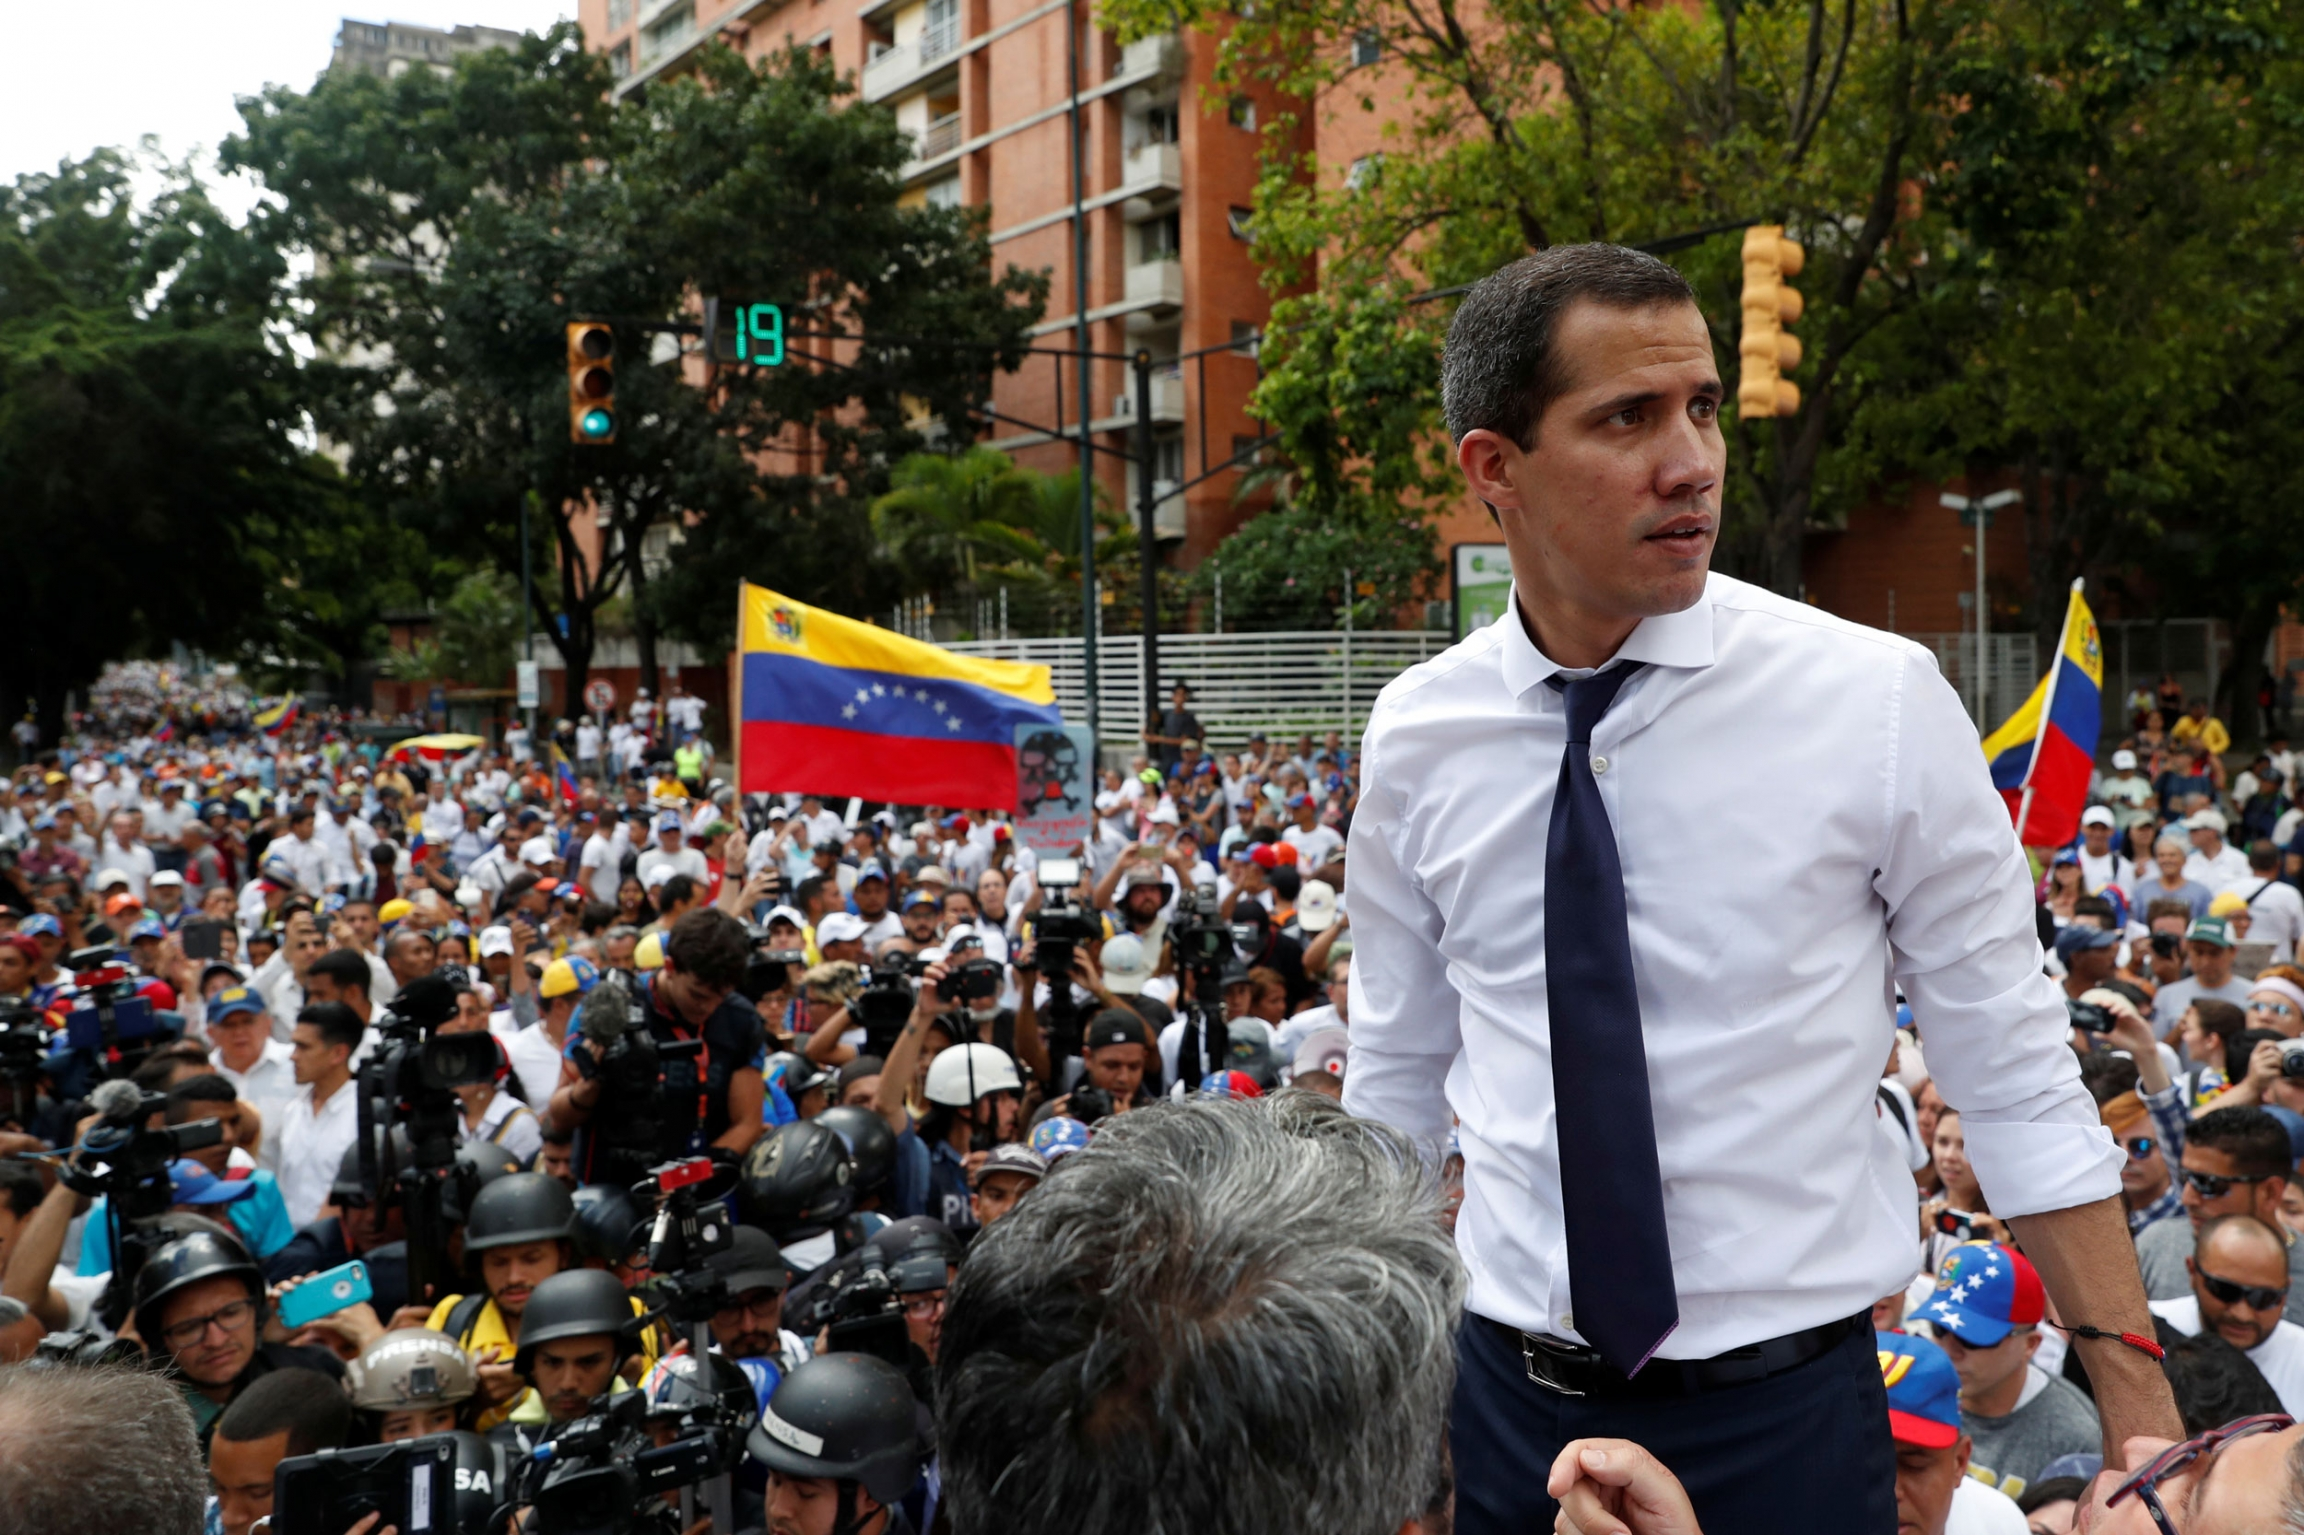 Venezuelan opposition leader Juan Guaidó is shown wearing a white shirt and tie in front of a large group of people.